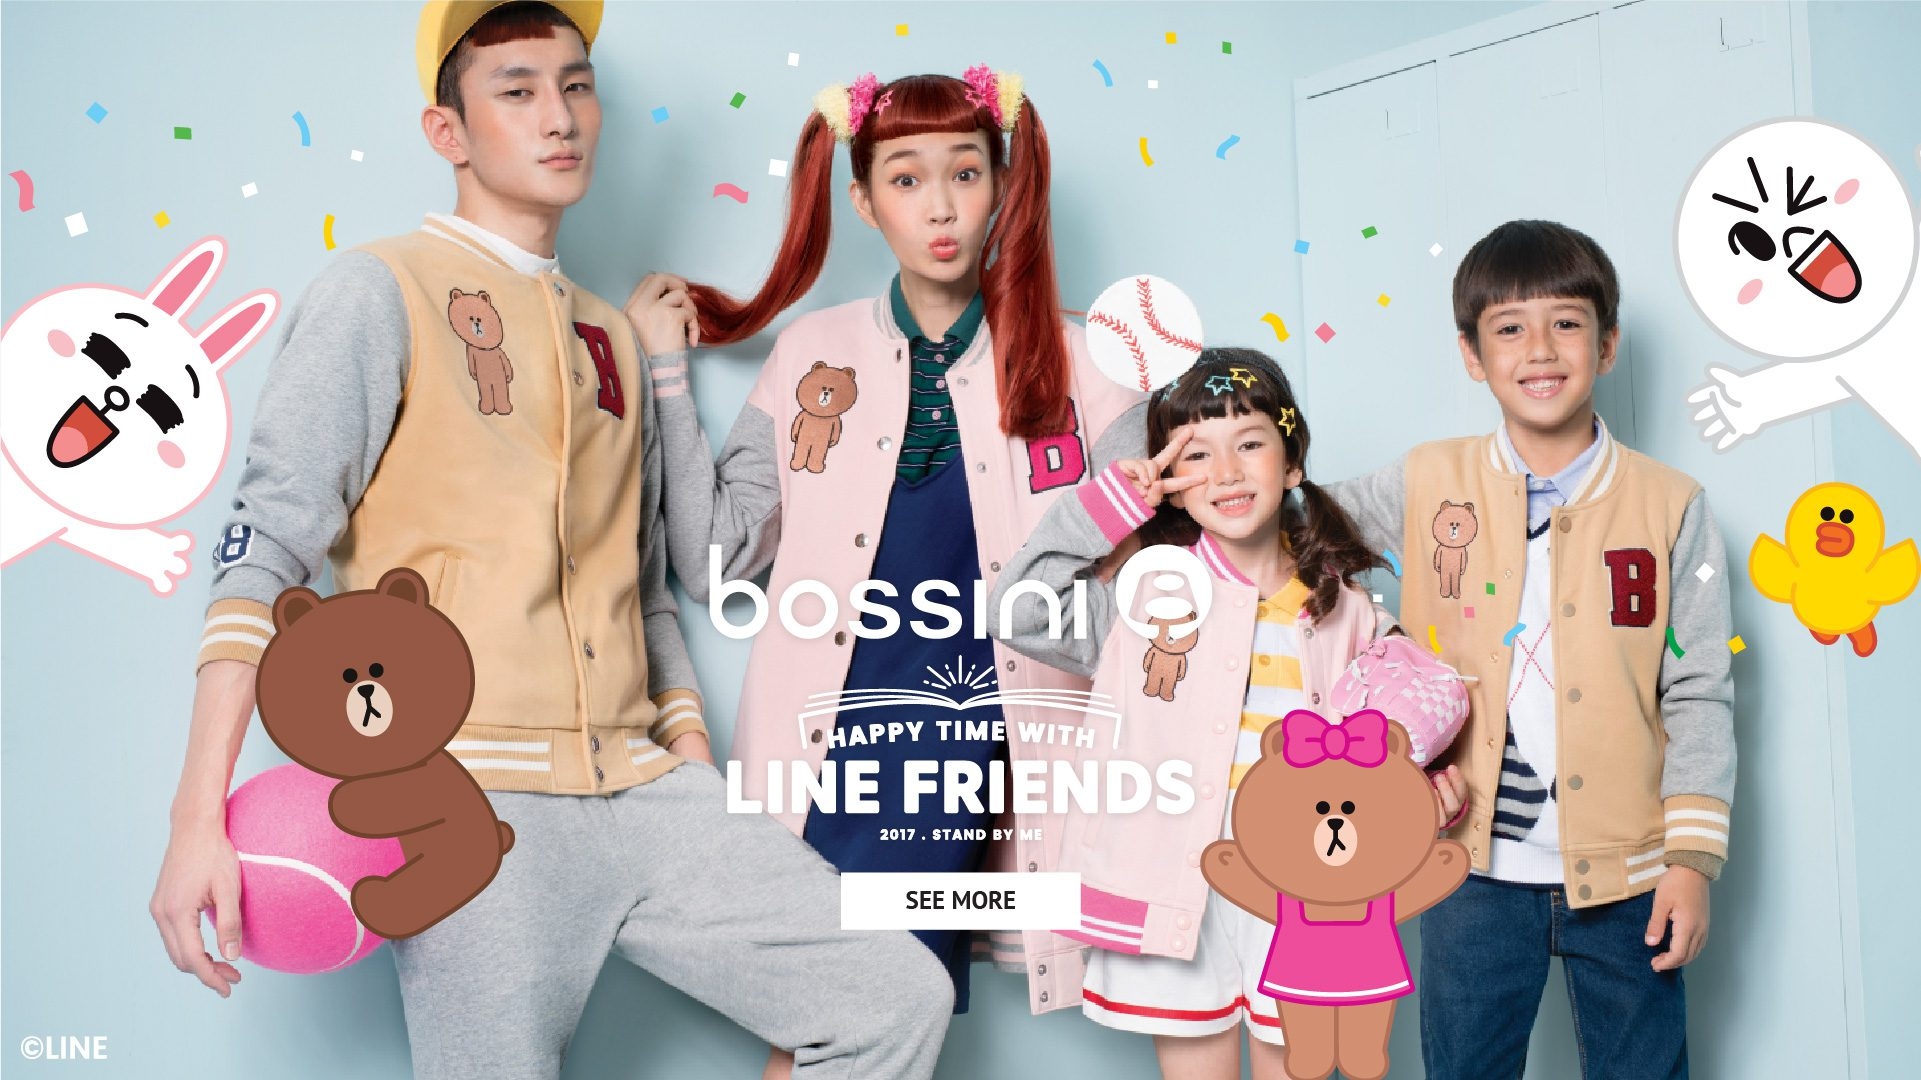 Happy Time with LINE Friends with Bossini X LINE Friends Collection